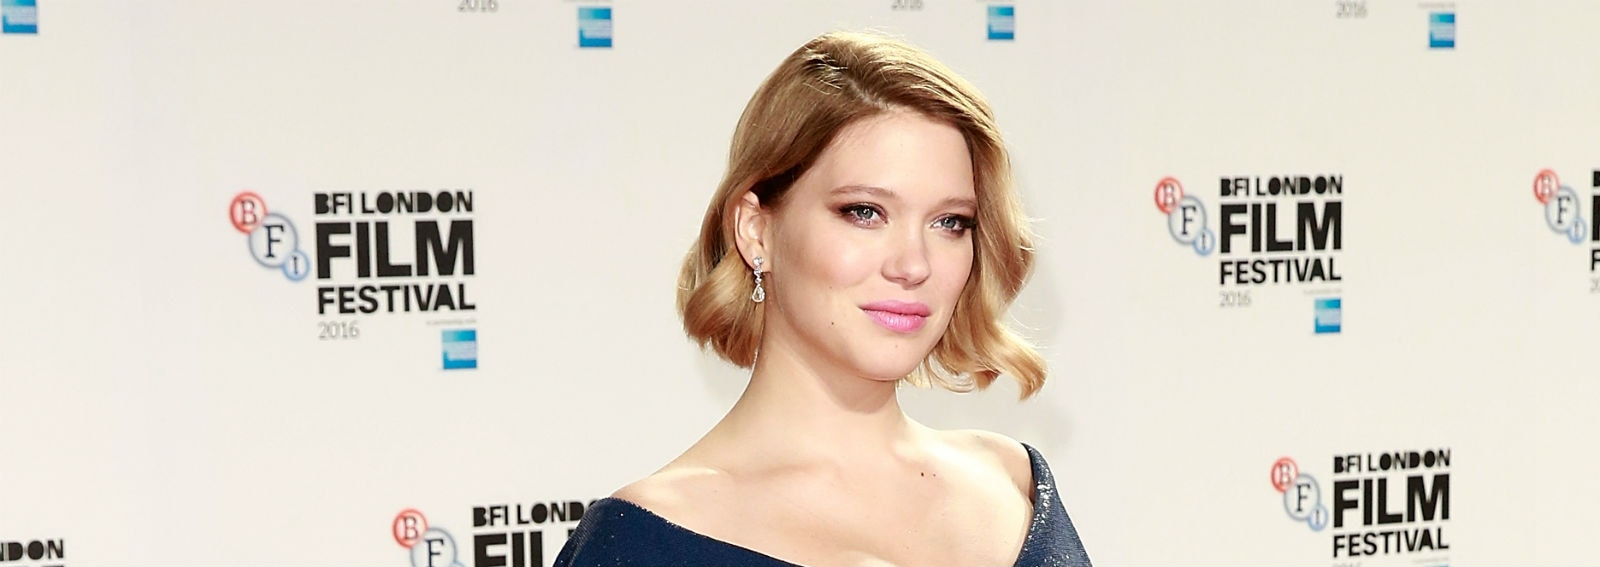 COVER-Lea Seydoux beauty look-DESKTOP